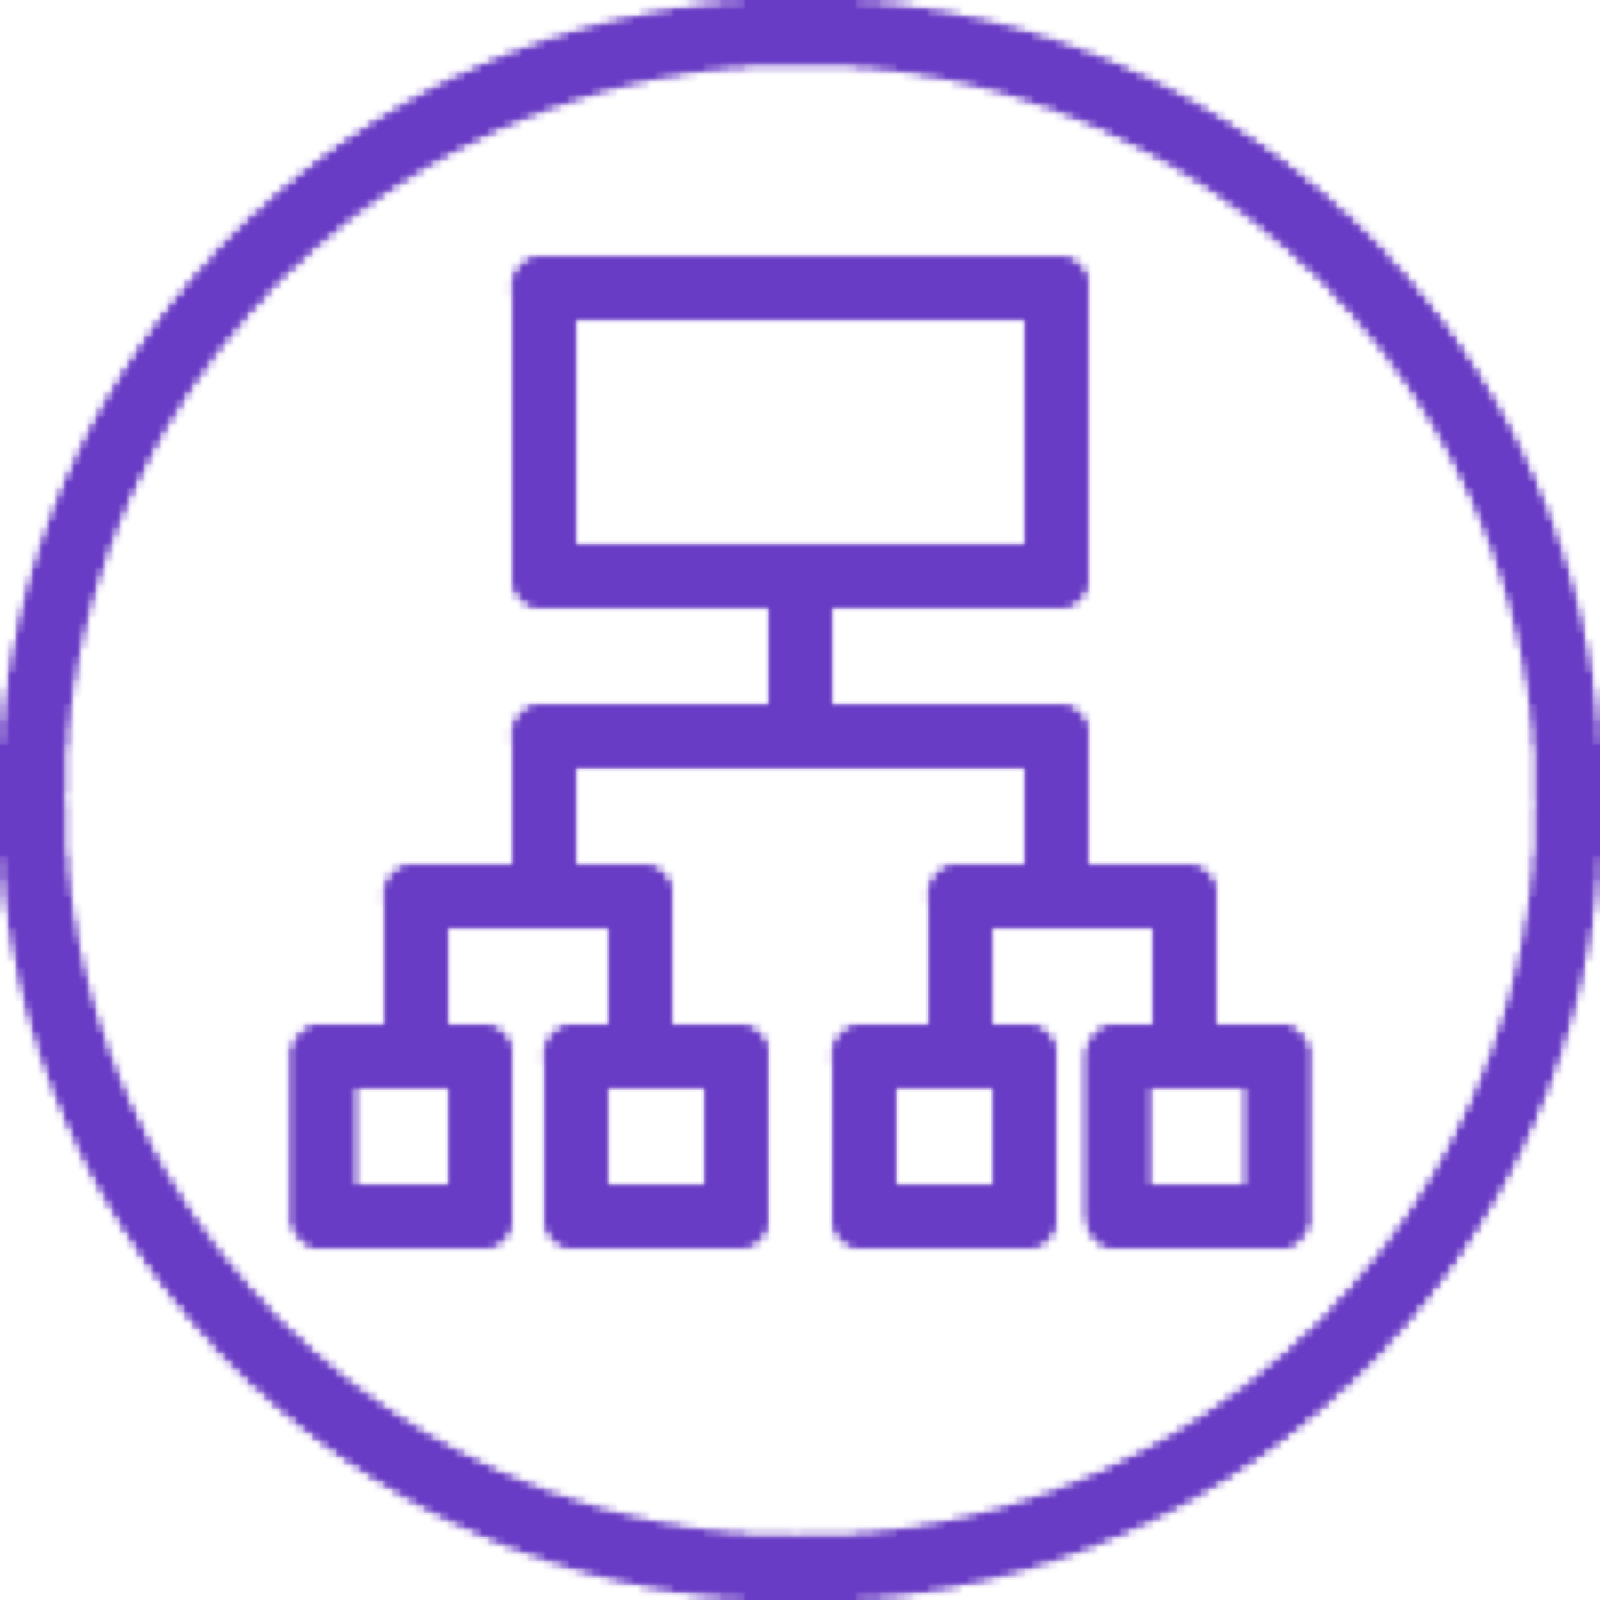 Application Load Balancer icon depicting a computer connected to four small squares